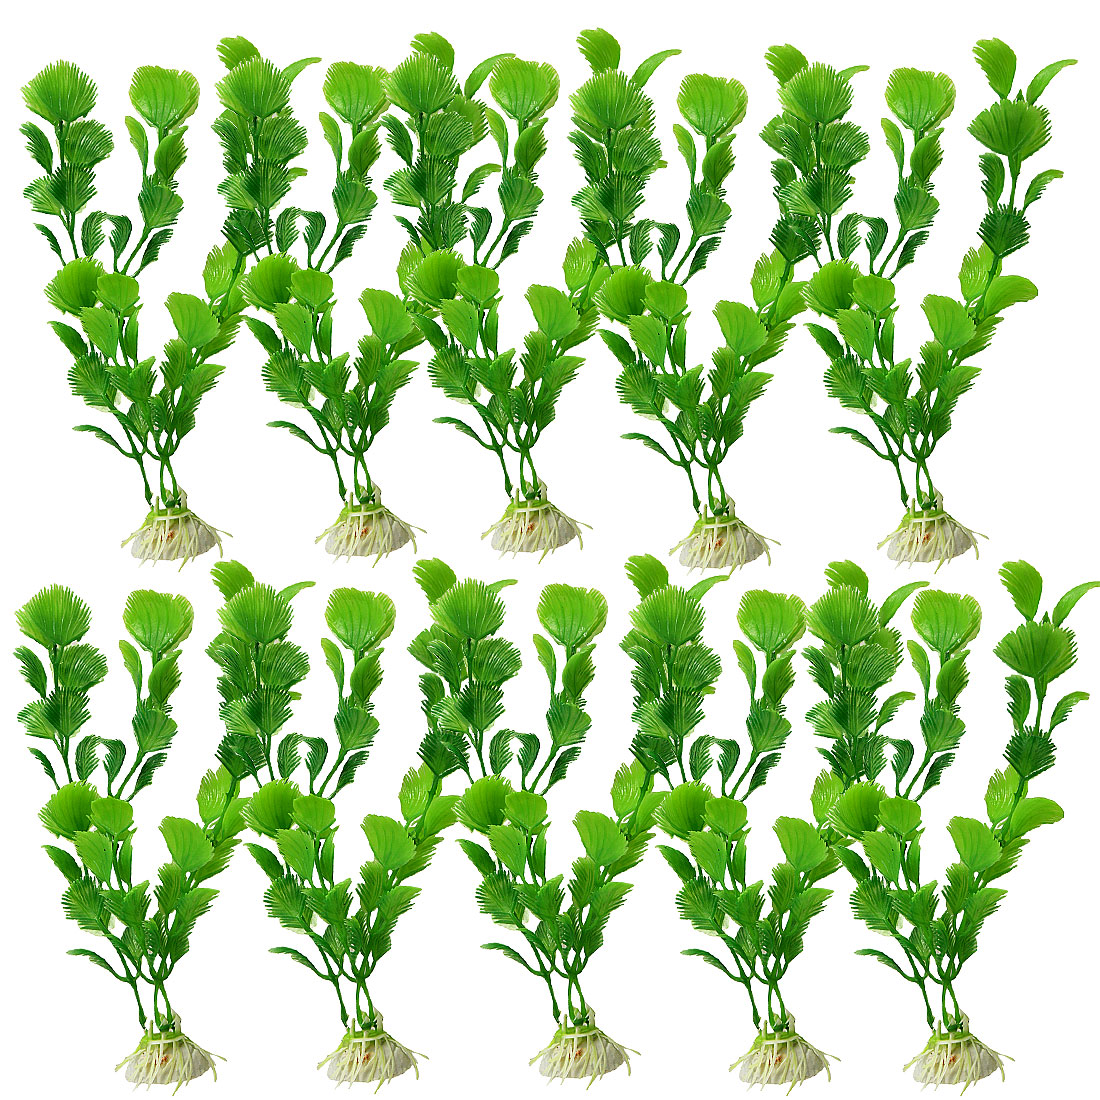 10 Pcs Green Emulational Plants Grass Decoration for Fish Tank